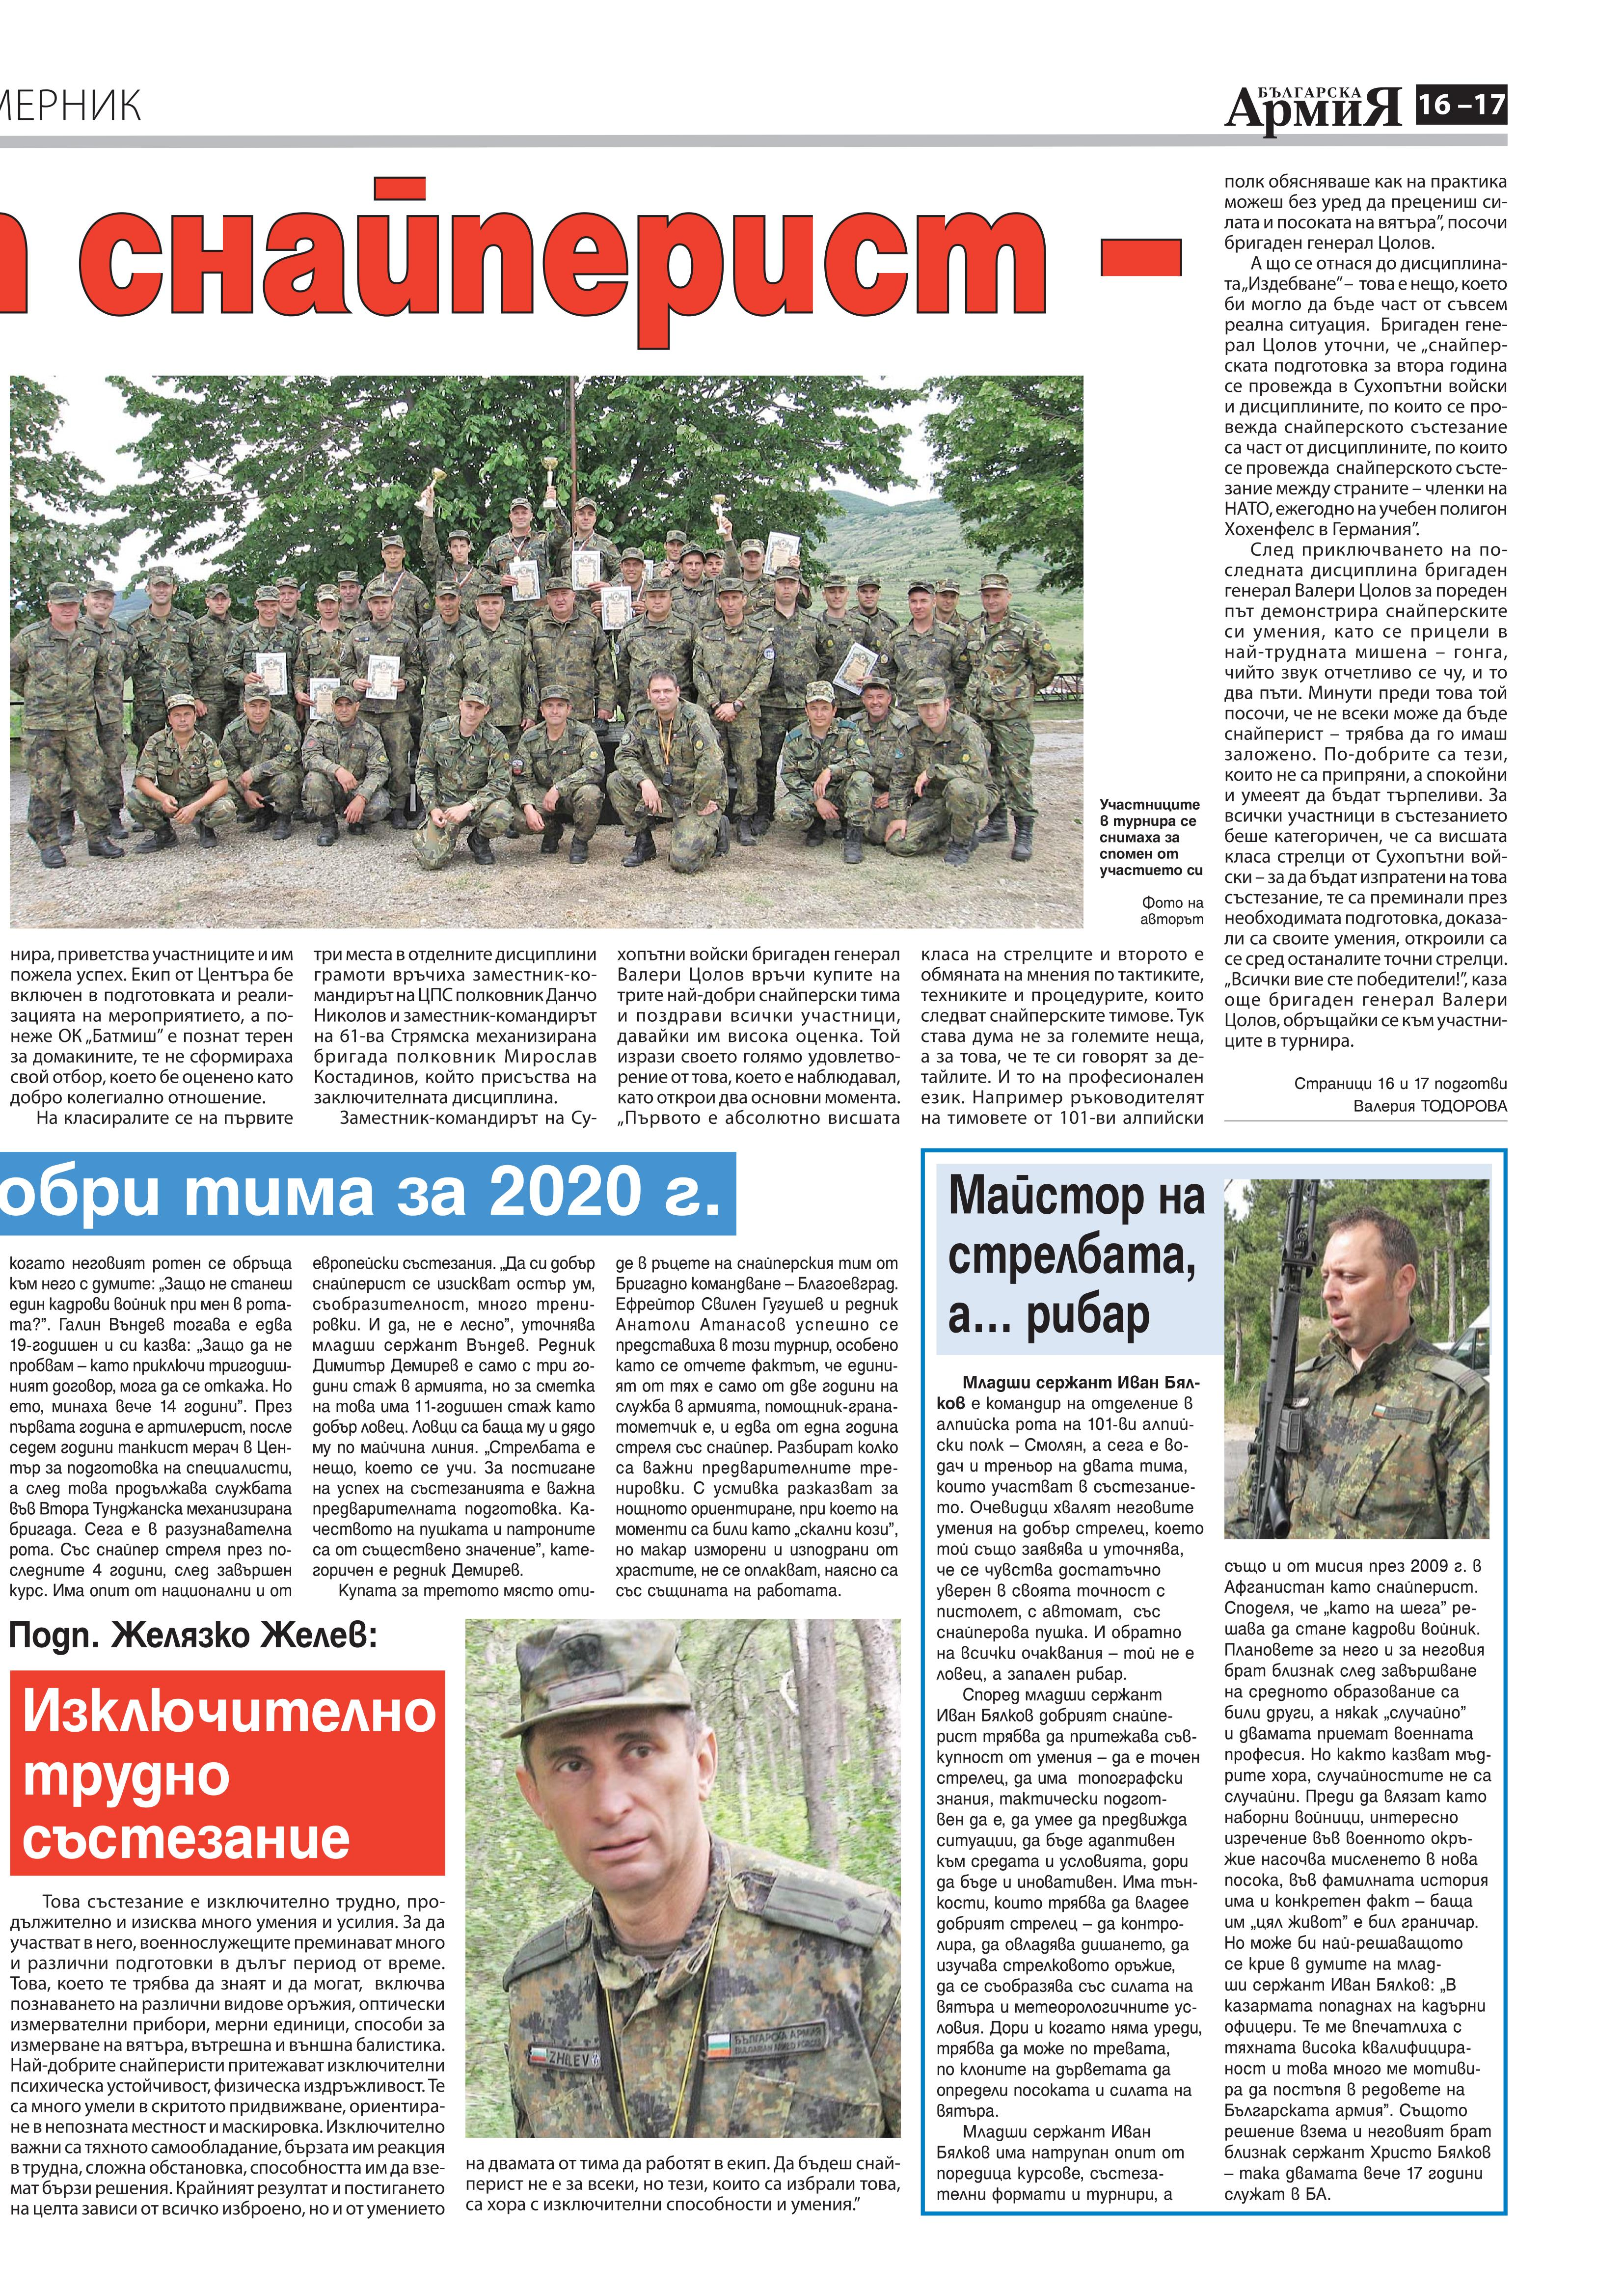 https://armymedia.bg/wp-content/uploads/2015/06/17.page1_-141.jpg